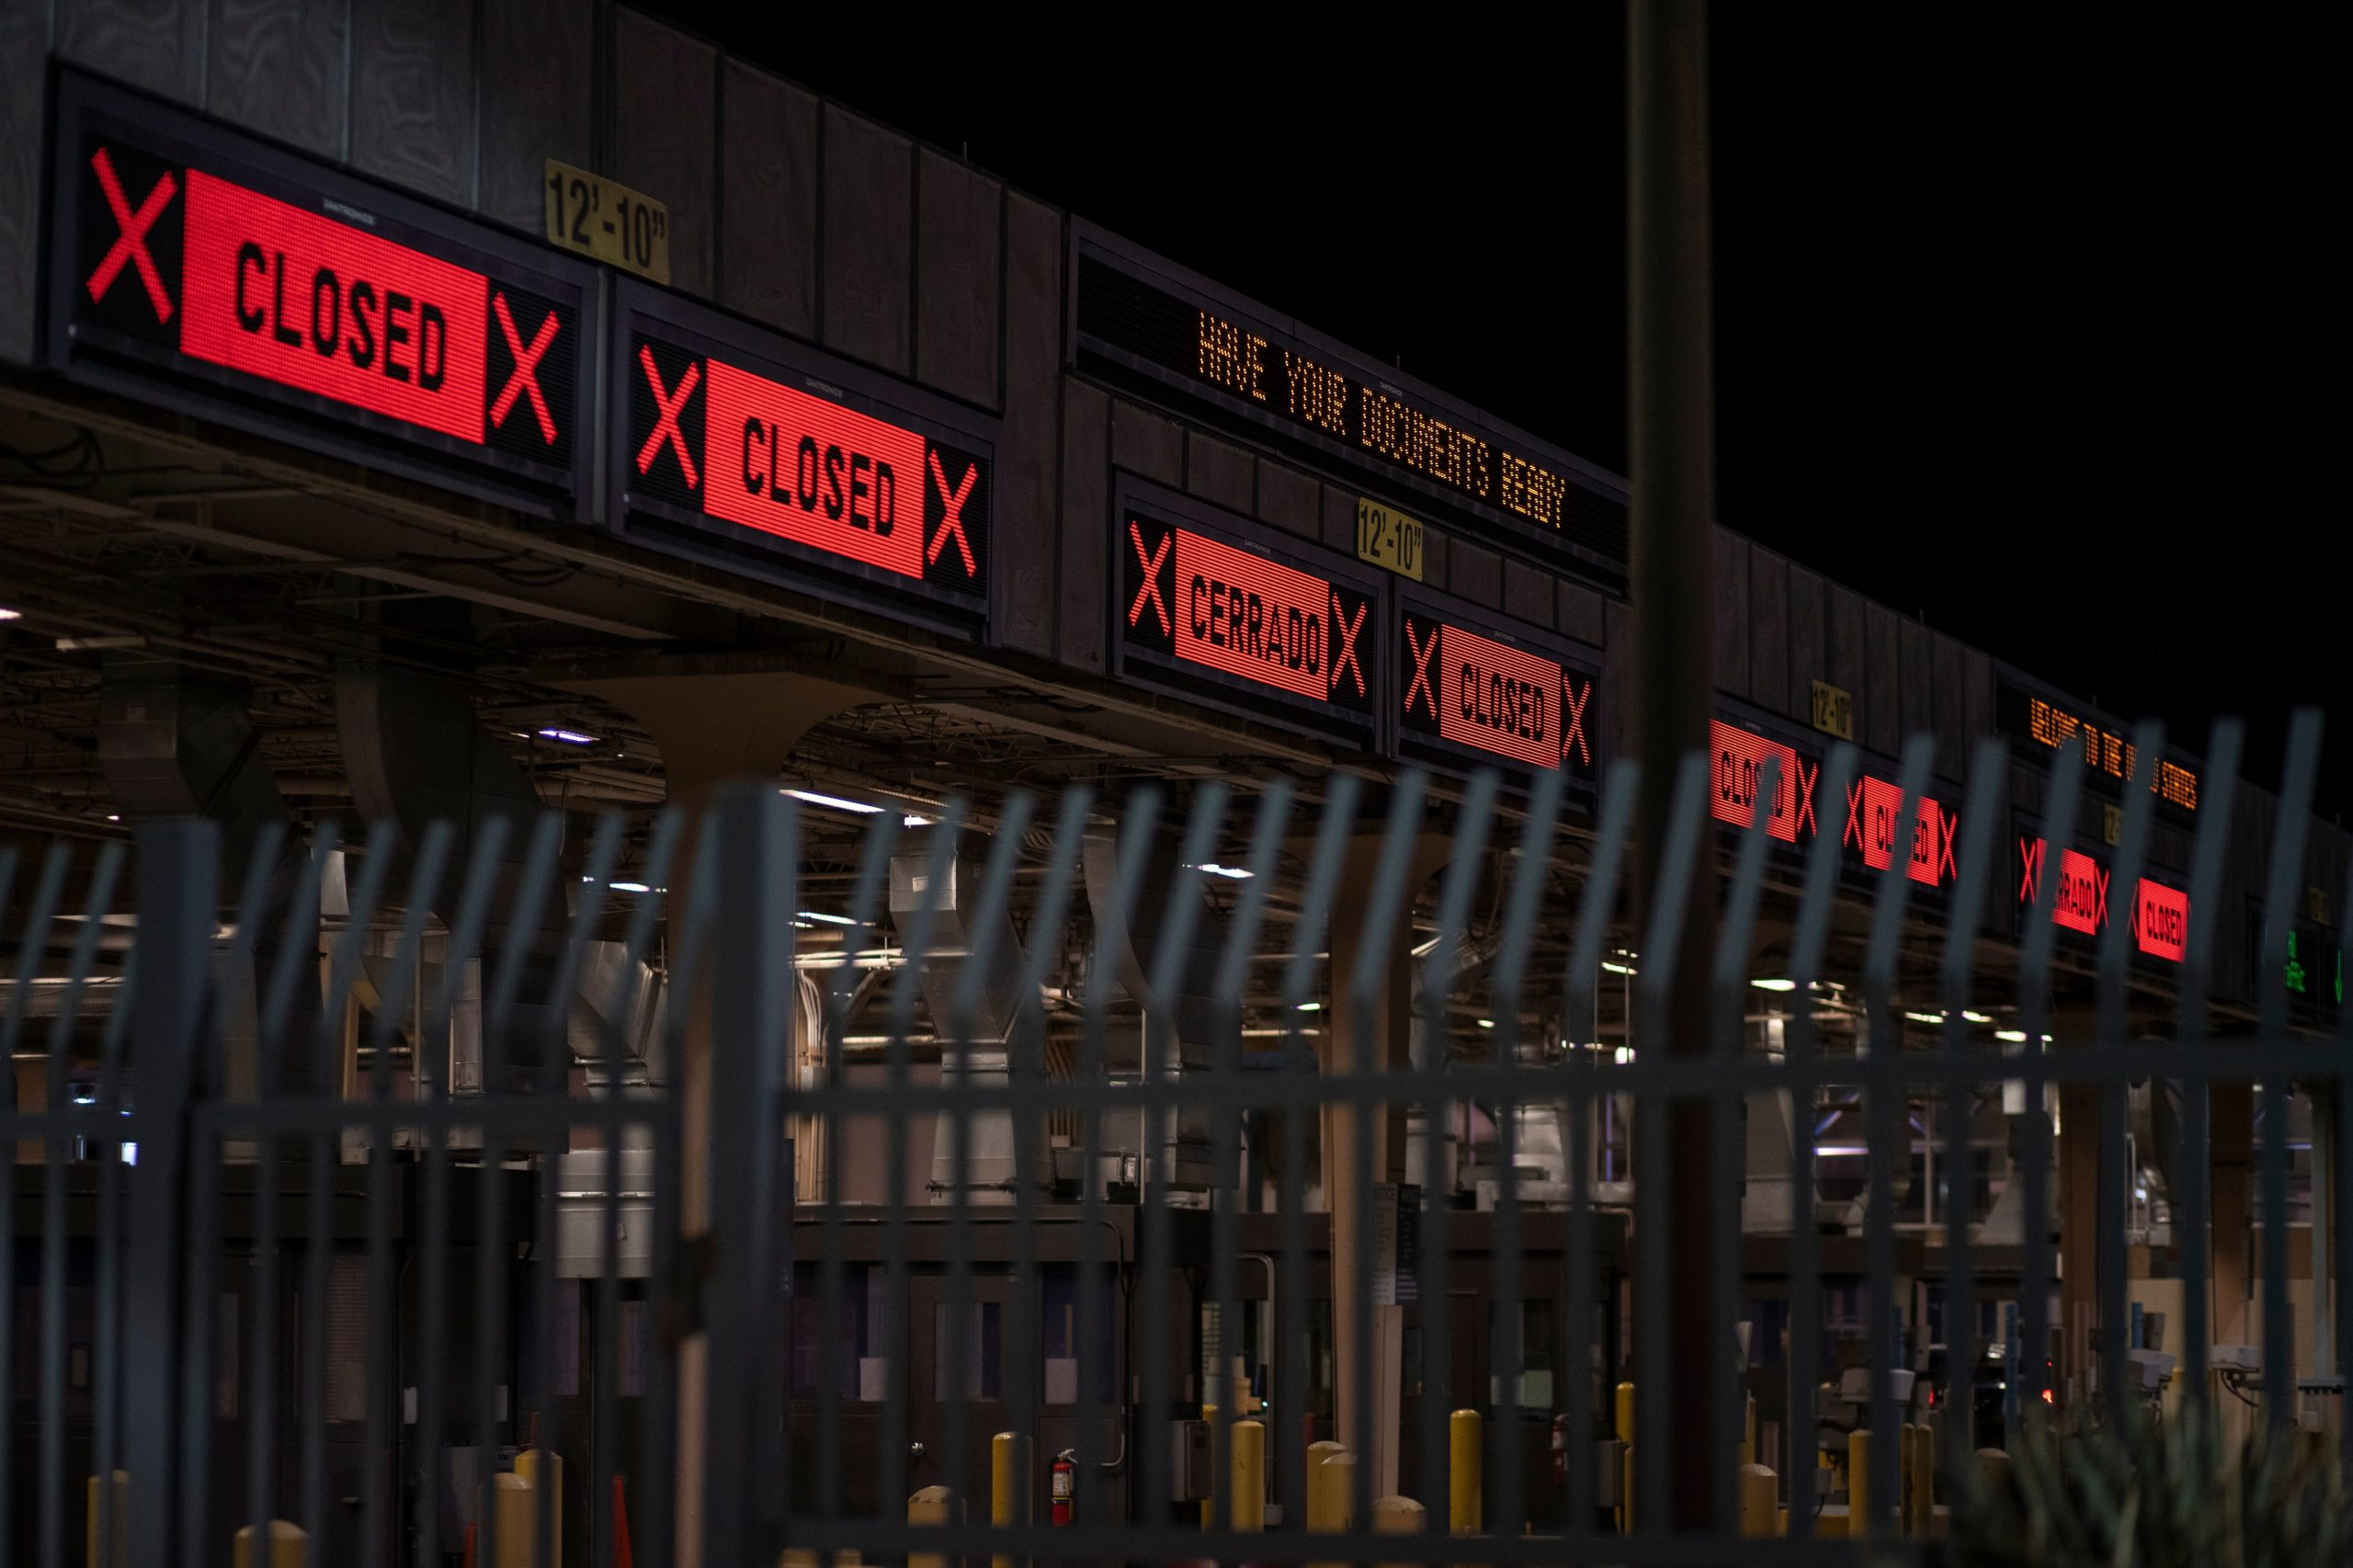 """In efforts to control the outbreak of COVID-19, The United States-Mexico border was closed to non-essential traffic at midnight on March 21, 2020 in El Paso, Texas. - US President Donald Trump announced on March 20, 2020, that the US and Mexico have agreed to restrict non-essential travel across their border beginning on March 21. He said the move, similar to one already announced with northern neighbor Canada, was necessary to prevent the """"spread the infection to our border agents, migrants, and to the public at large."""" (Photo by Paul Ratje / Agence France-Presse / AFP) (Photo by PAUL RATJE/Agence France-Presse/AFP via Getty Images)"""